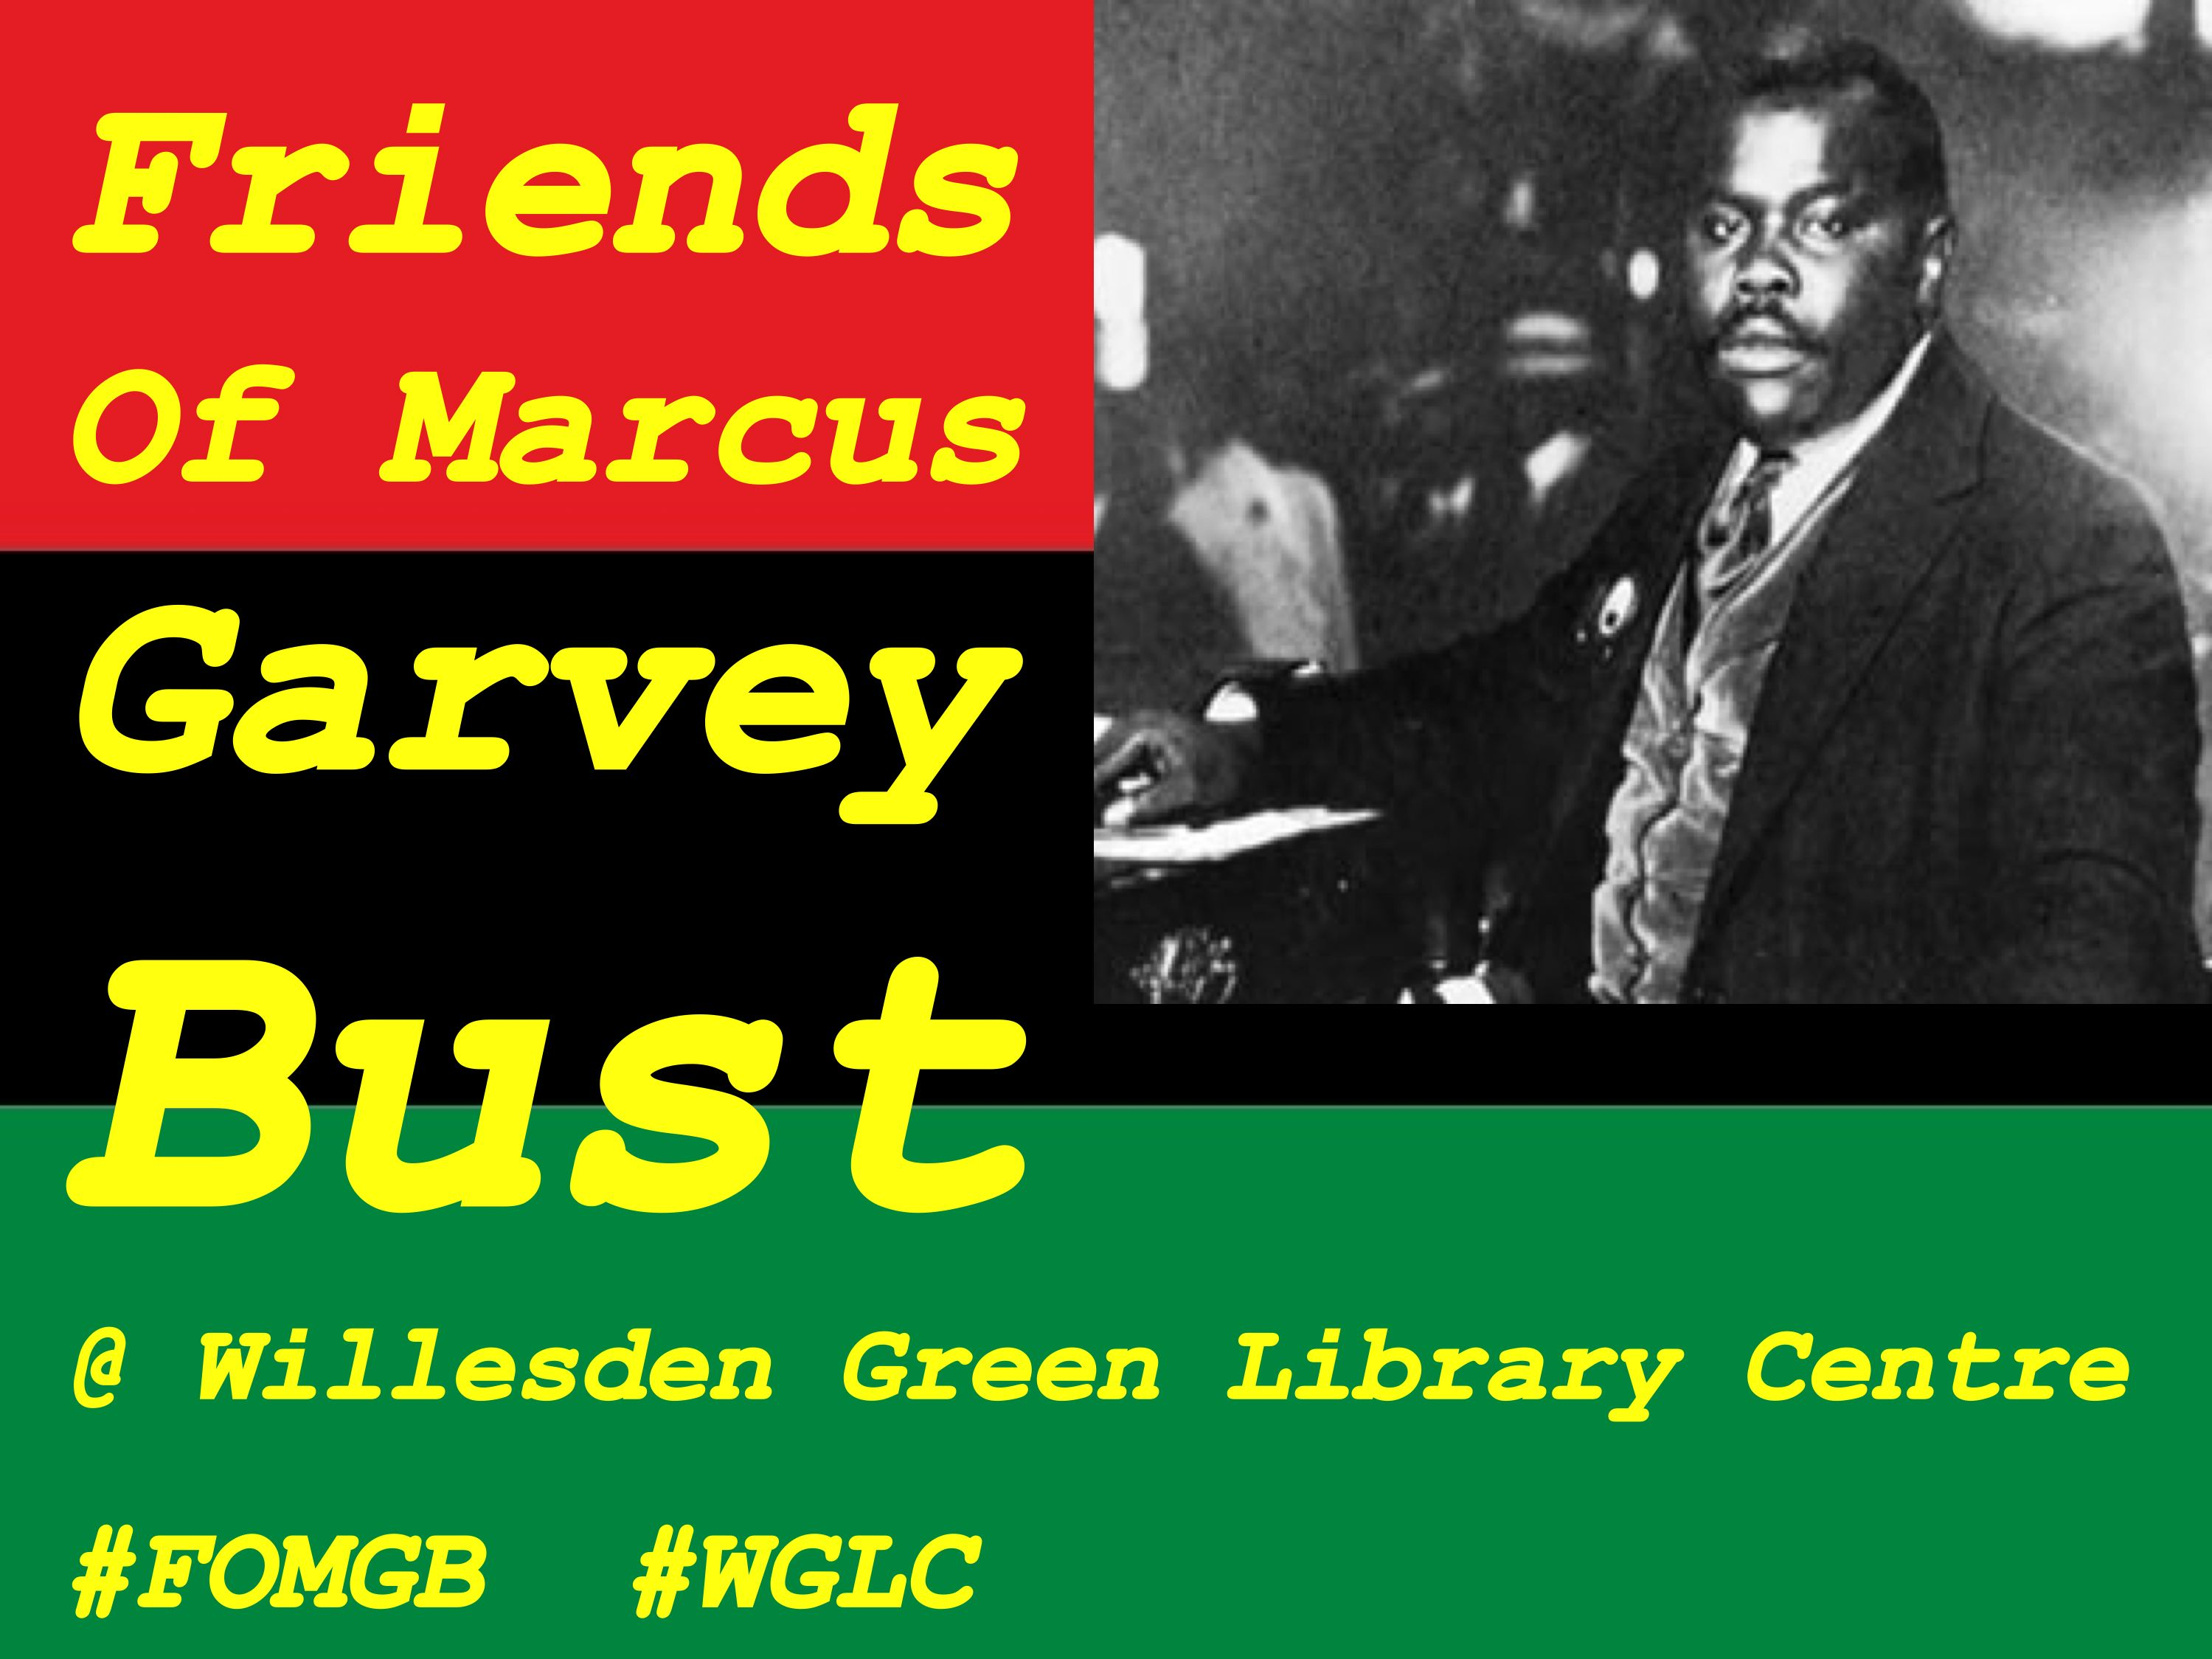 friends of marcus garvey bust